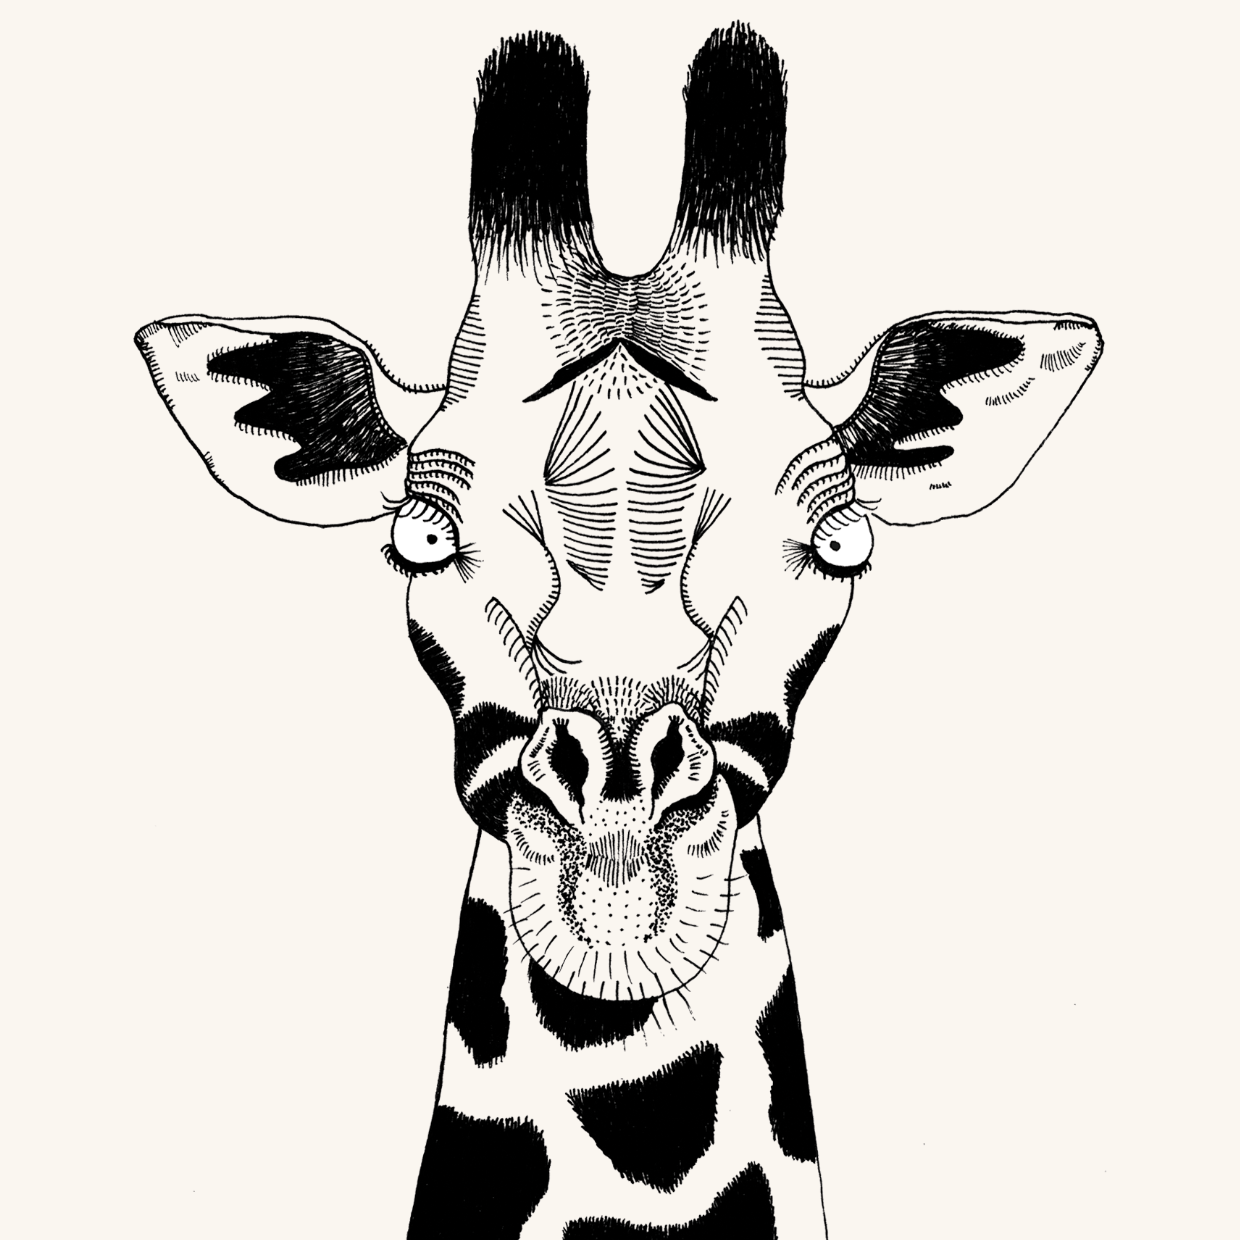 Cheetah and Giraffe people as animals illustrated artwork by Lauren Fowler